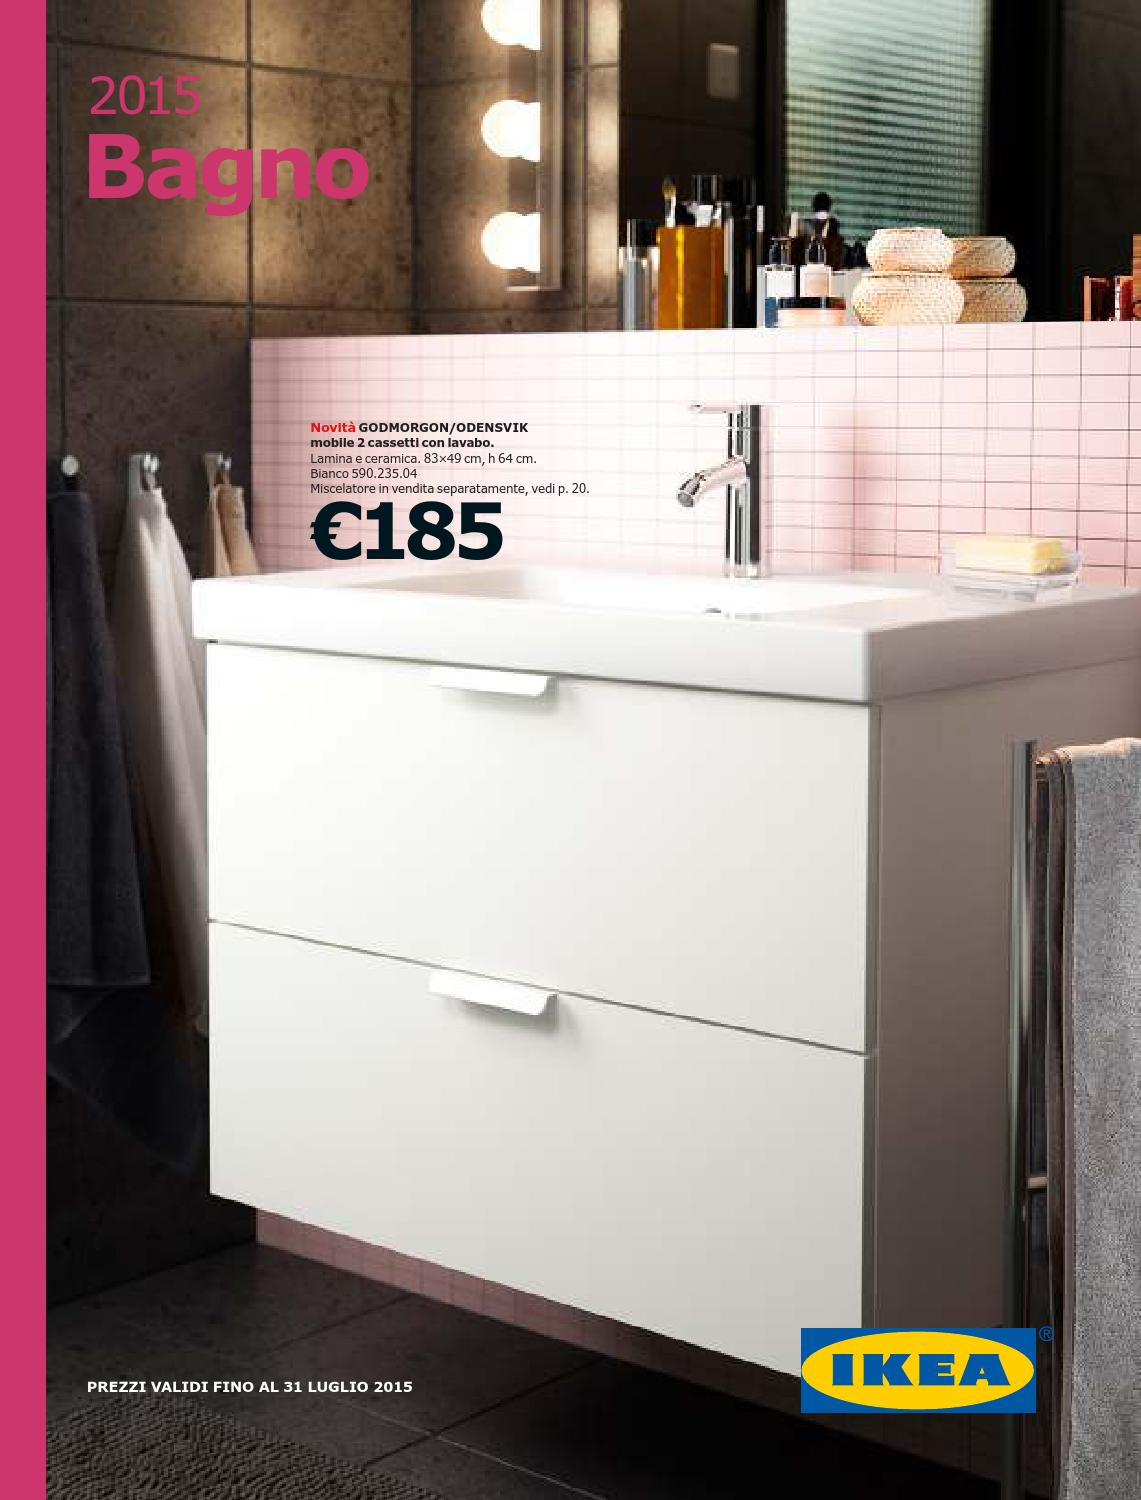 ikea bagno2015 by volavolantino issuu. Black Bedroom Furniture Sets. Home Design Ideas